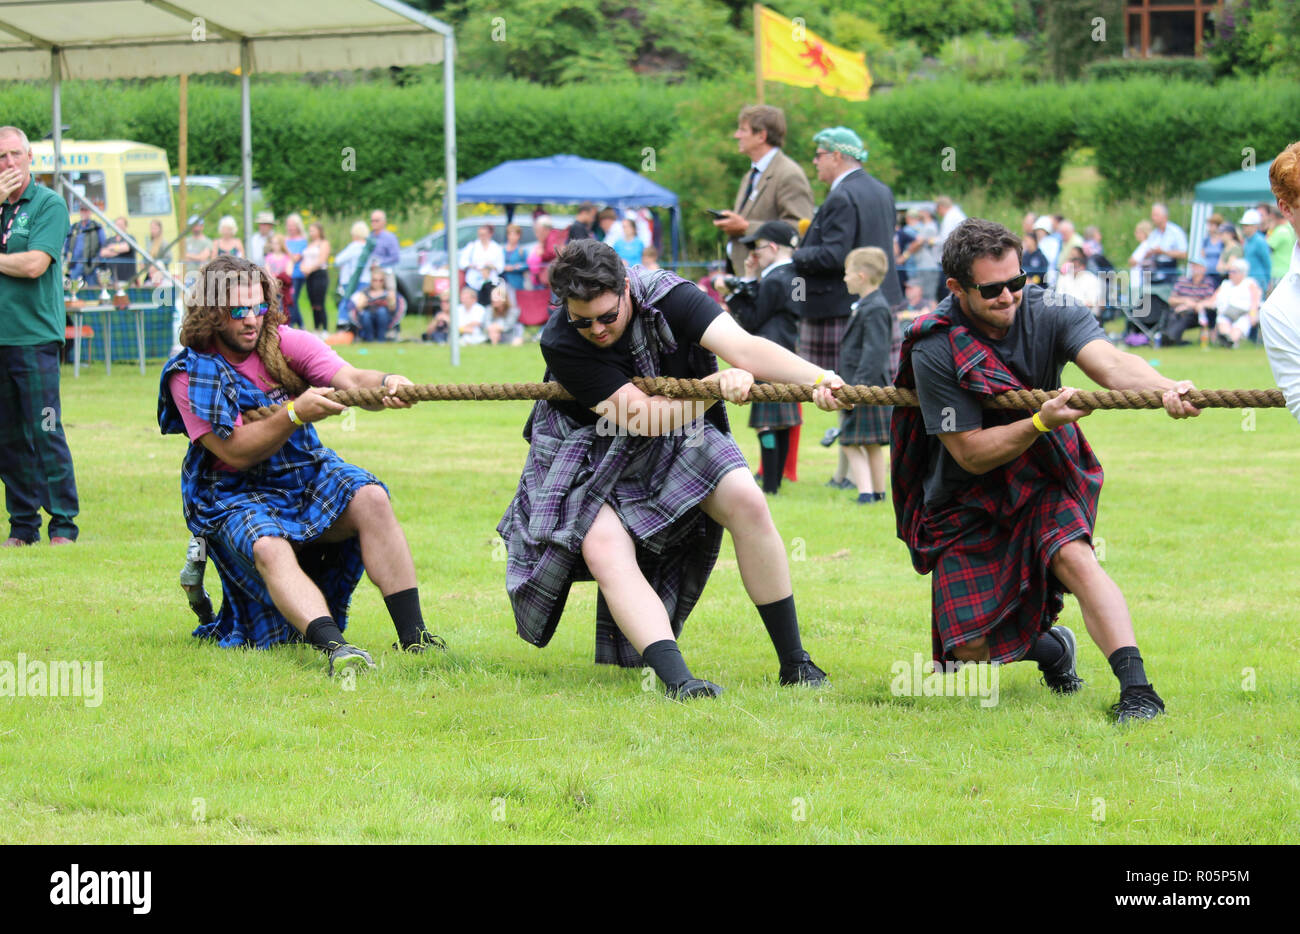 CRIEFF, SCOTLAND, 21 JULY 2018: Members of the public take part in the 'Tug of War' event at the Lochearnhead Highland Games near Crieff in Scotland.  - Stock Image